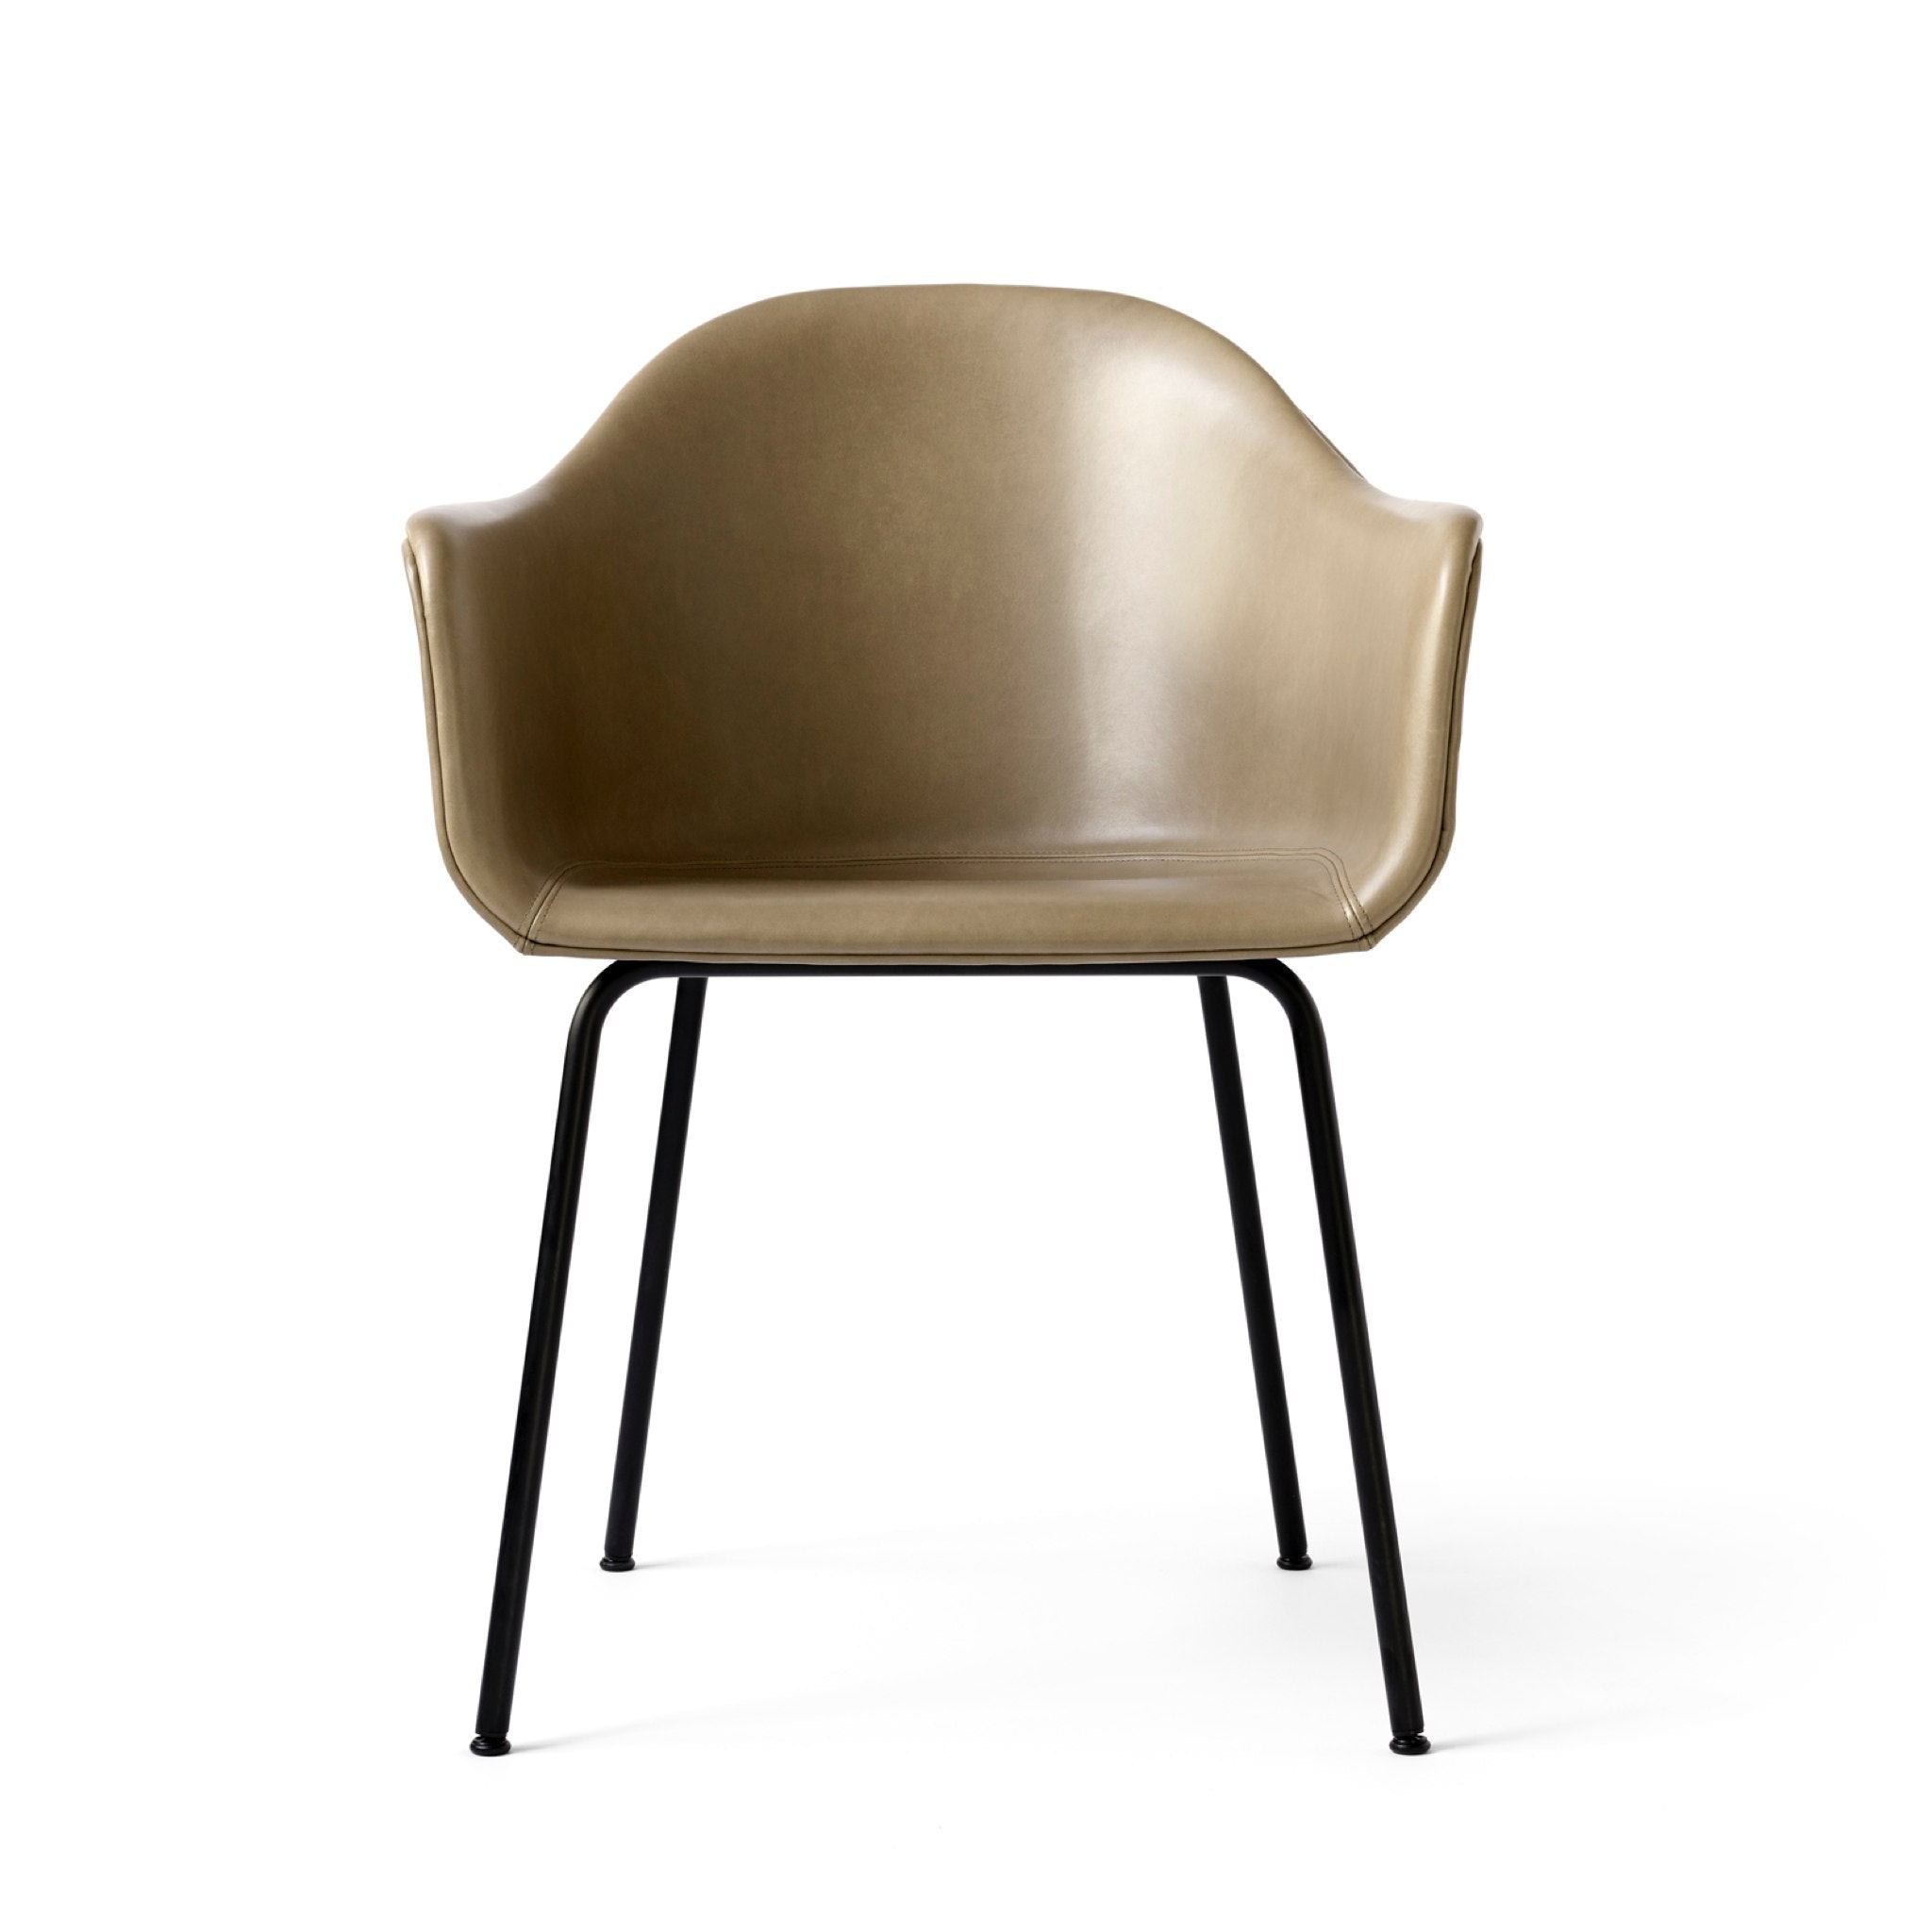 Harbour Chair Upholstered with Steel Base by Menu